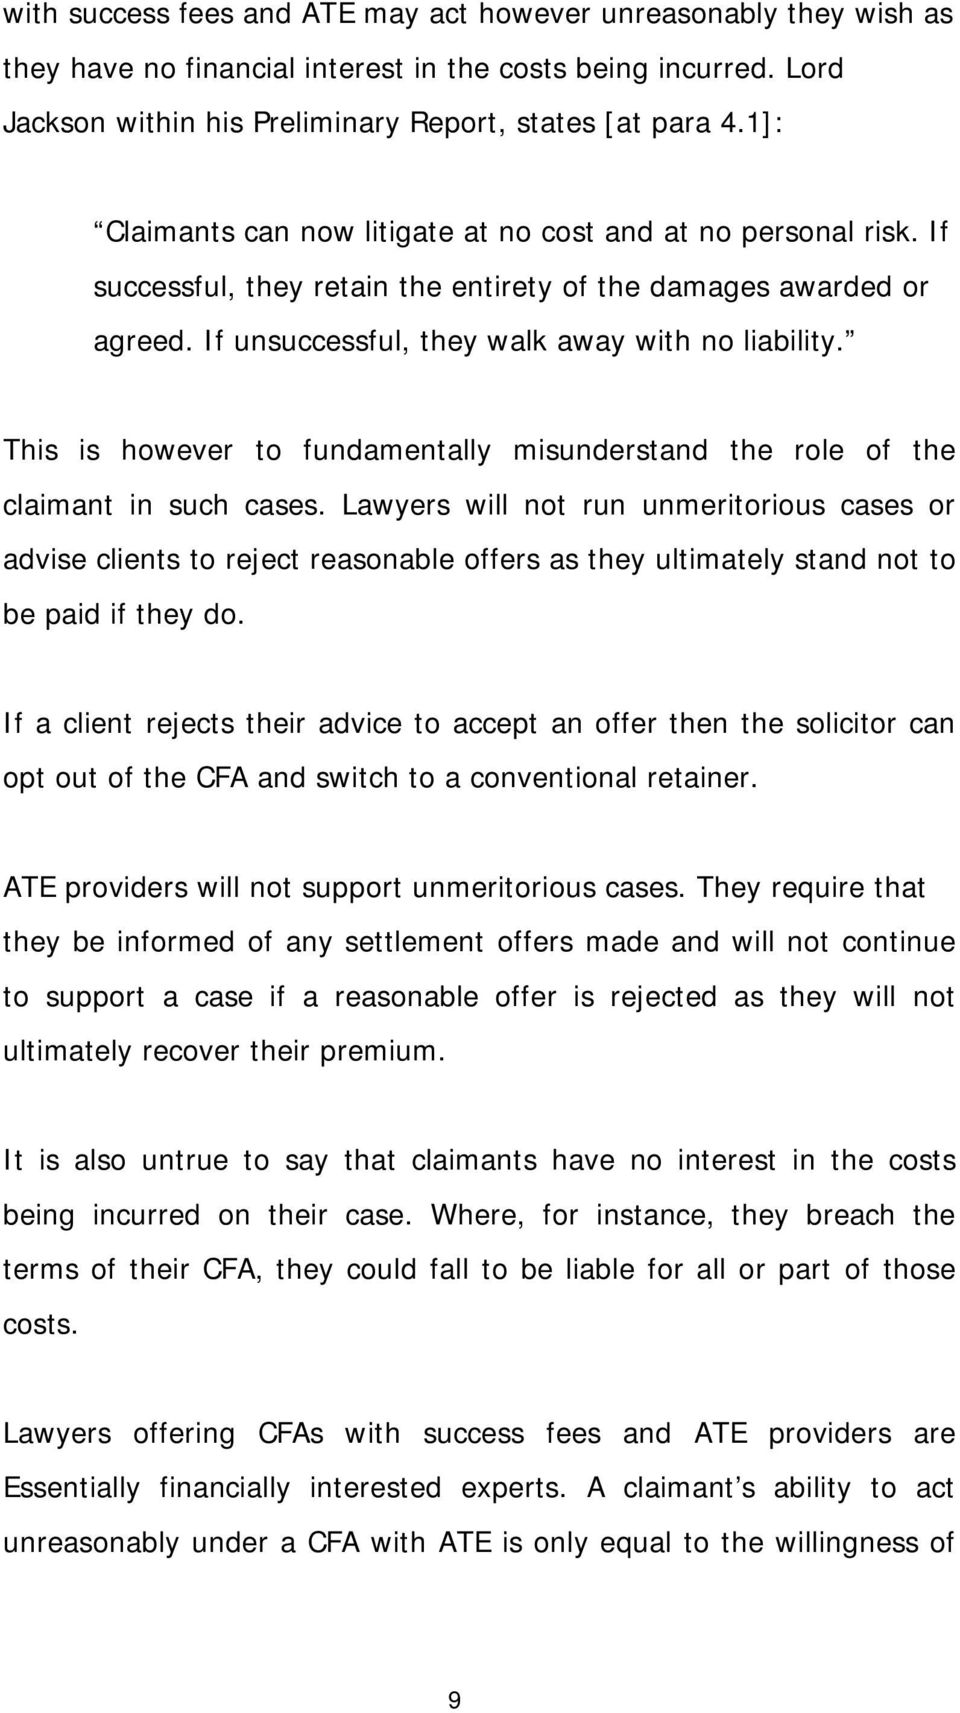 This is however to fundamentally misunderstand the role of the claimant in such cases.